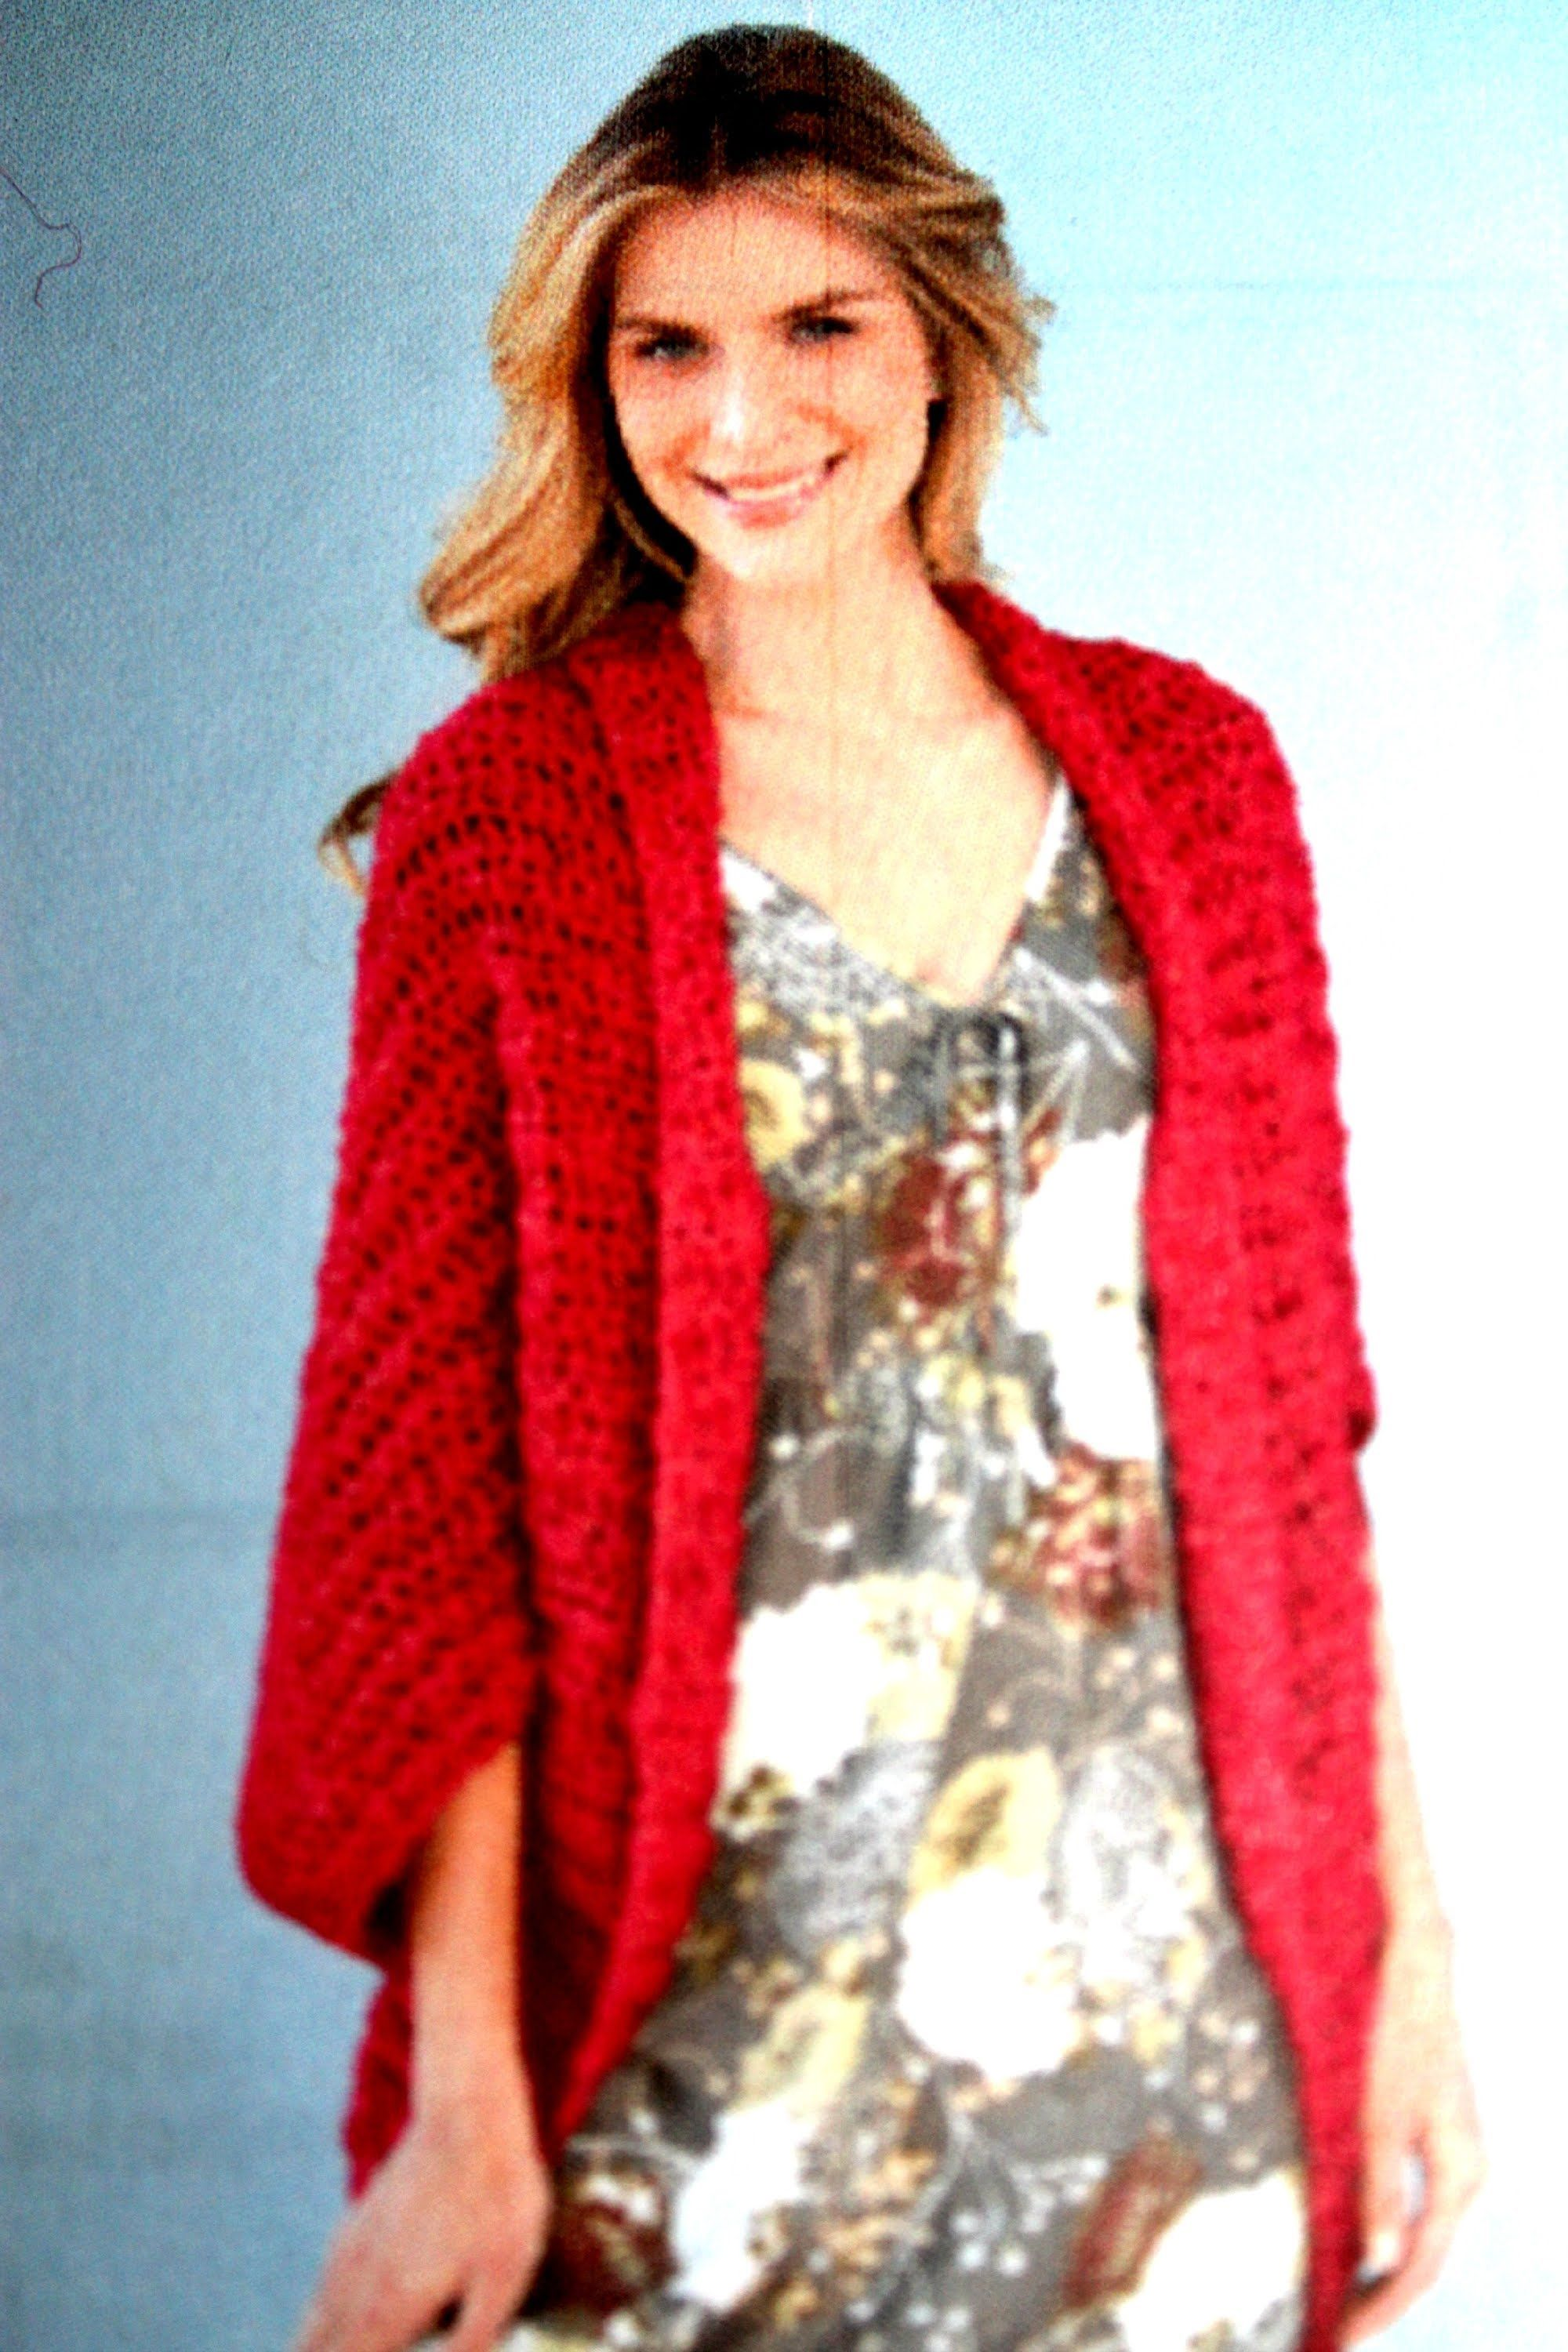 Yolanda Soto Lopez #crochet Shrug  Lion Brand Free Pattern Download  (english)